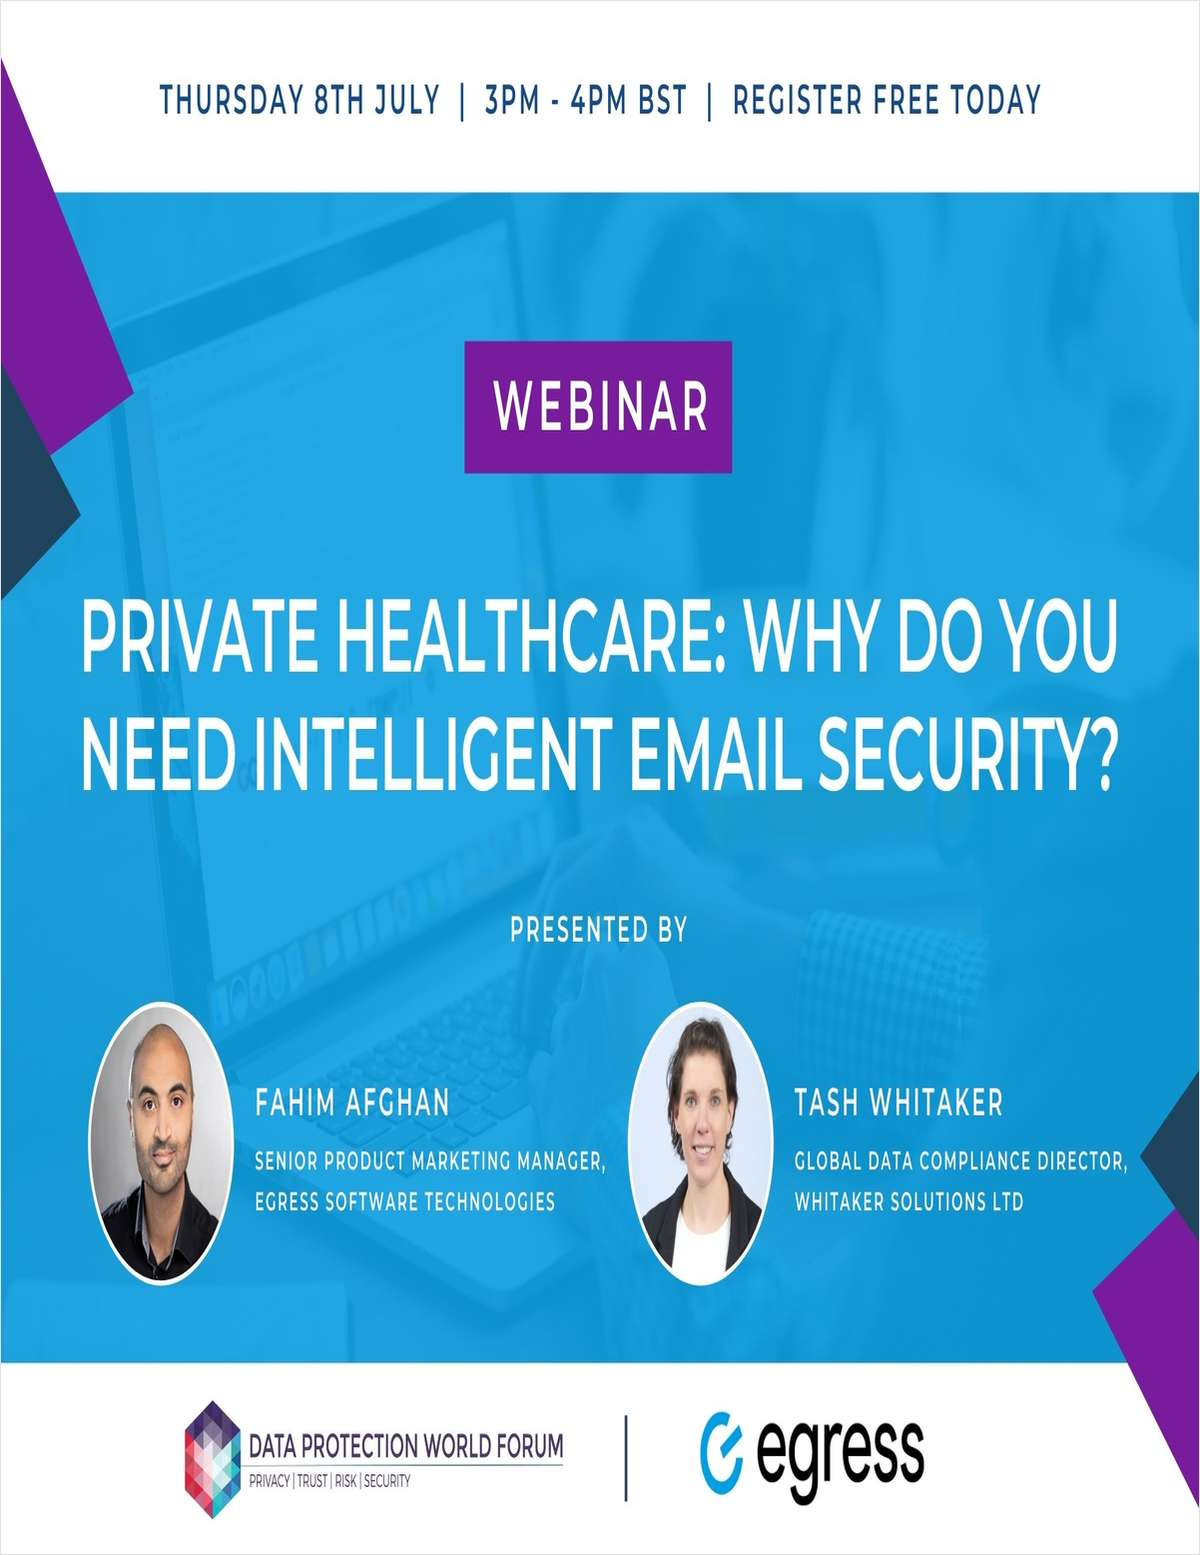 Webinar: Private Healthcare: Why Do You Need Intelligent Email Security?